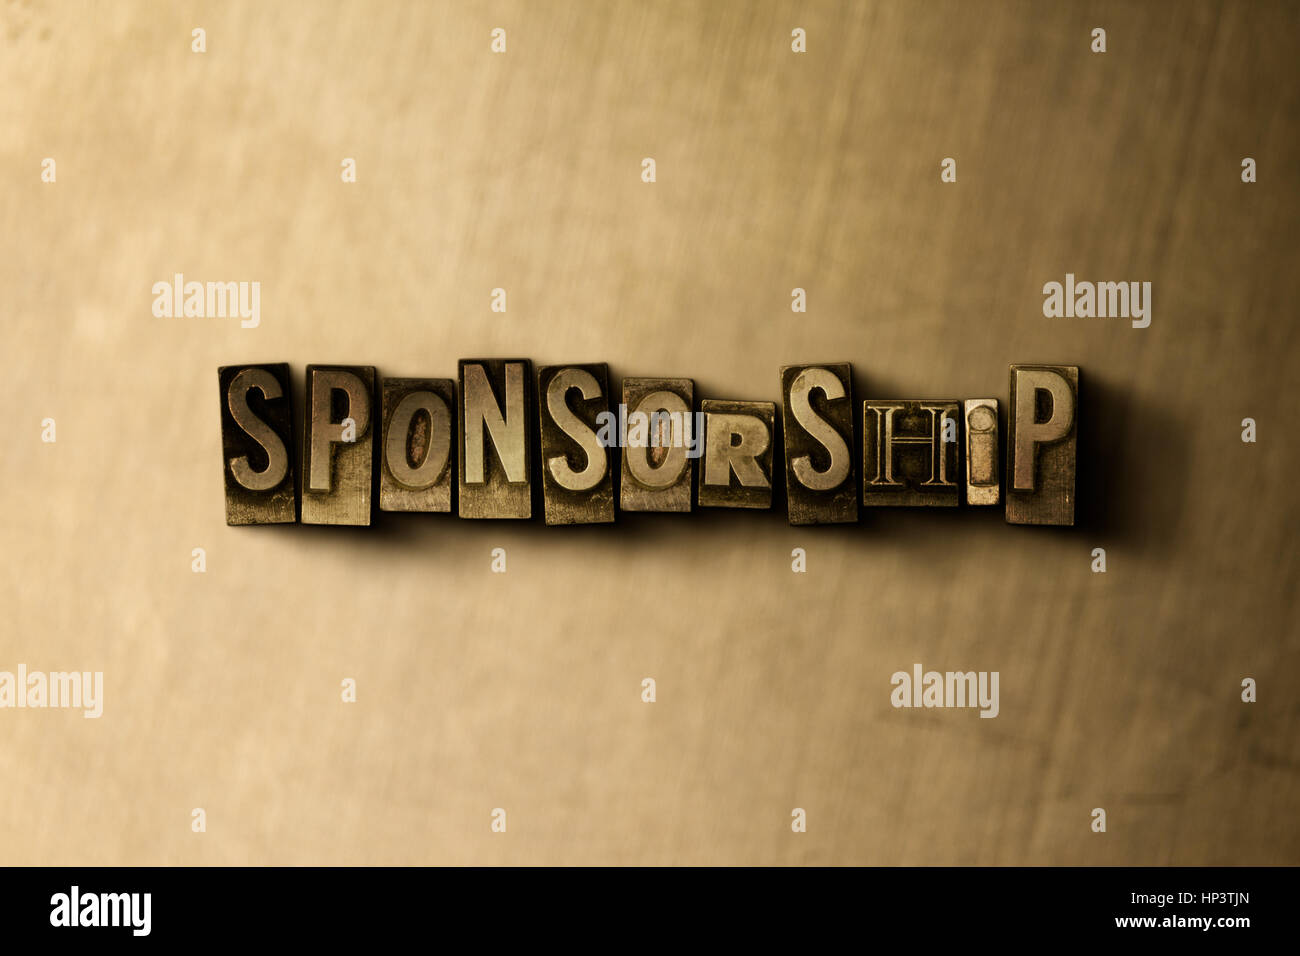 SPONSORSHIP - close-up of grungy vintage typeset word on metal backdrop. Royalty free stock illustration.  Can be - Stock Image